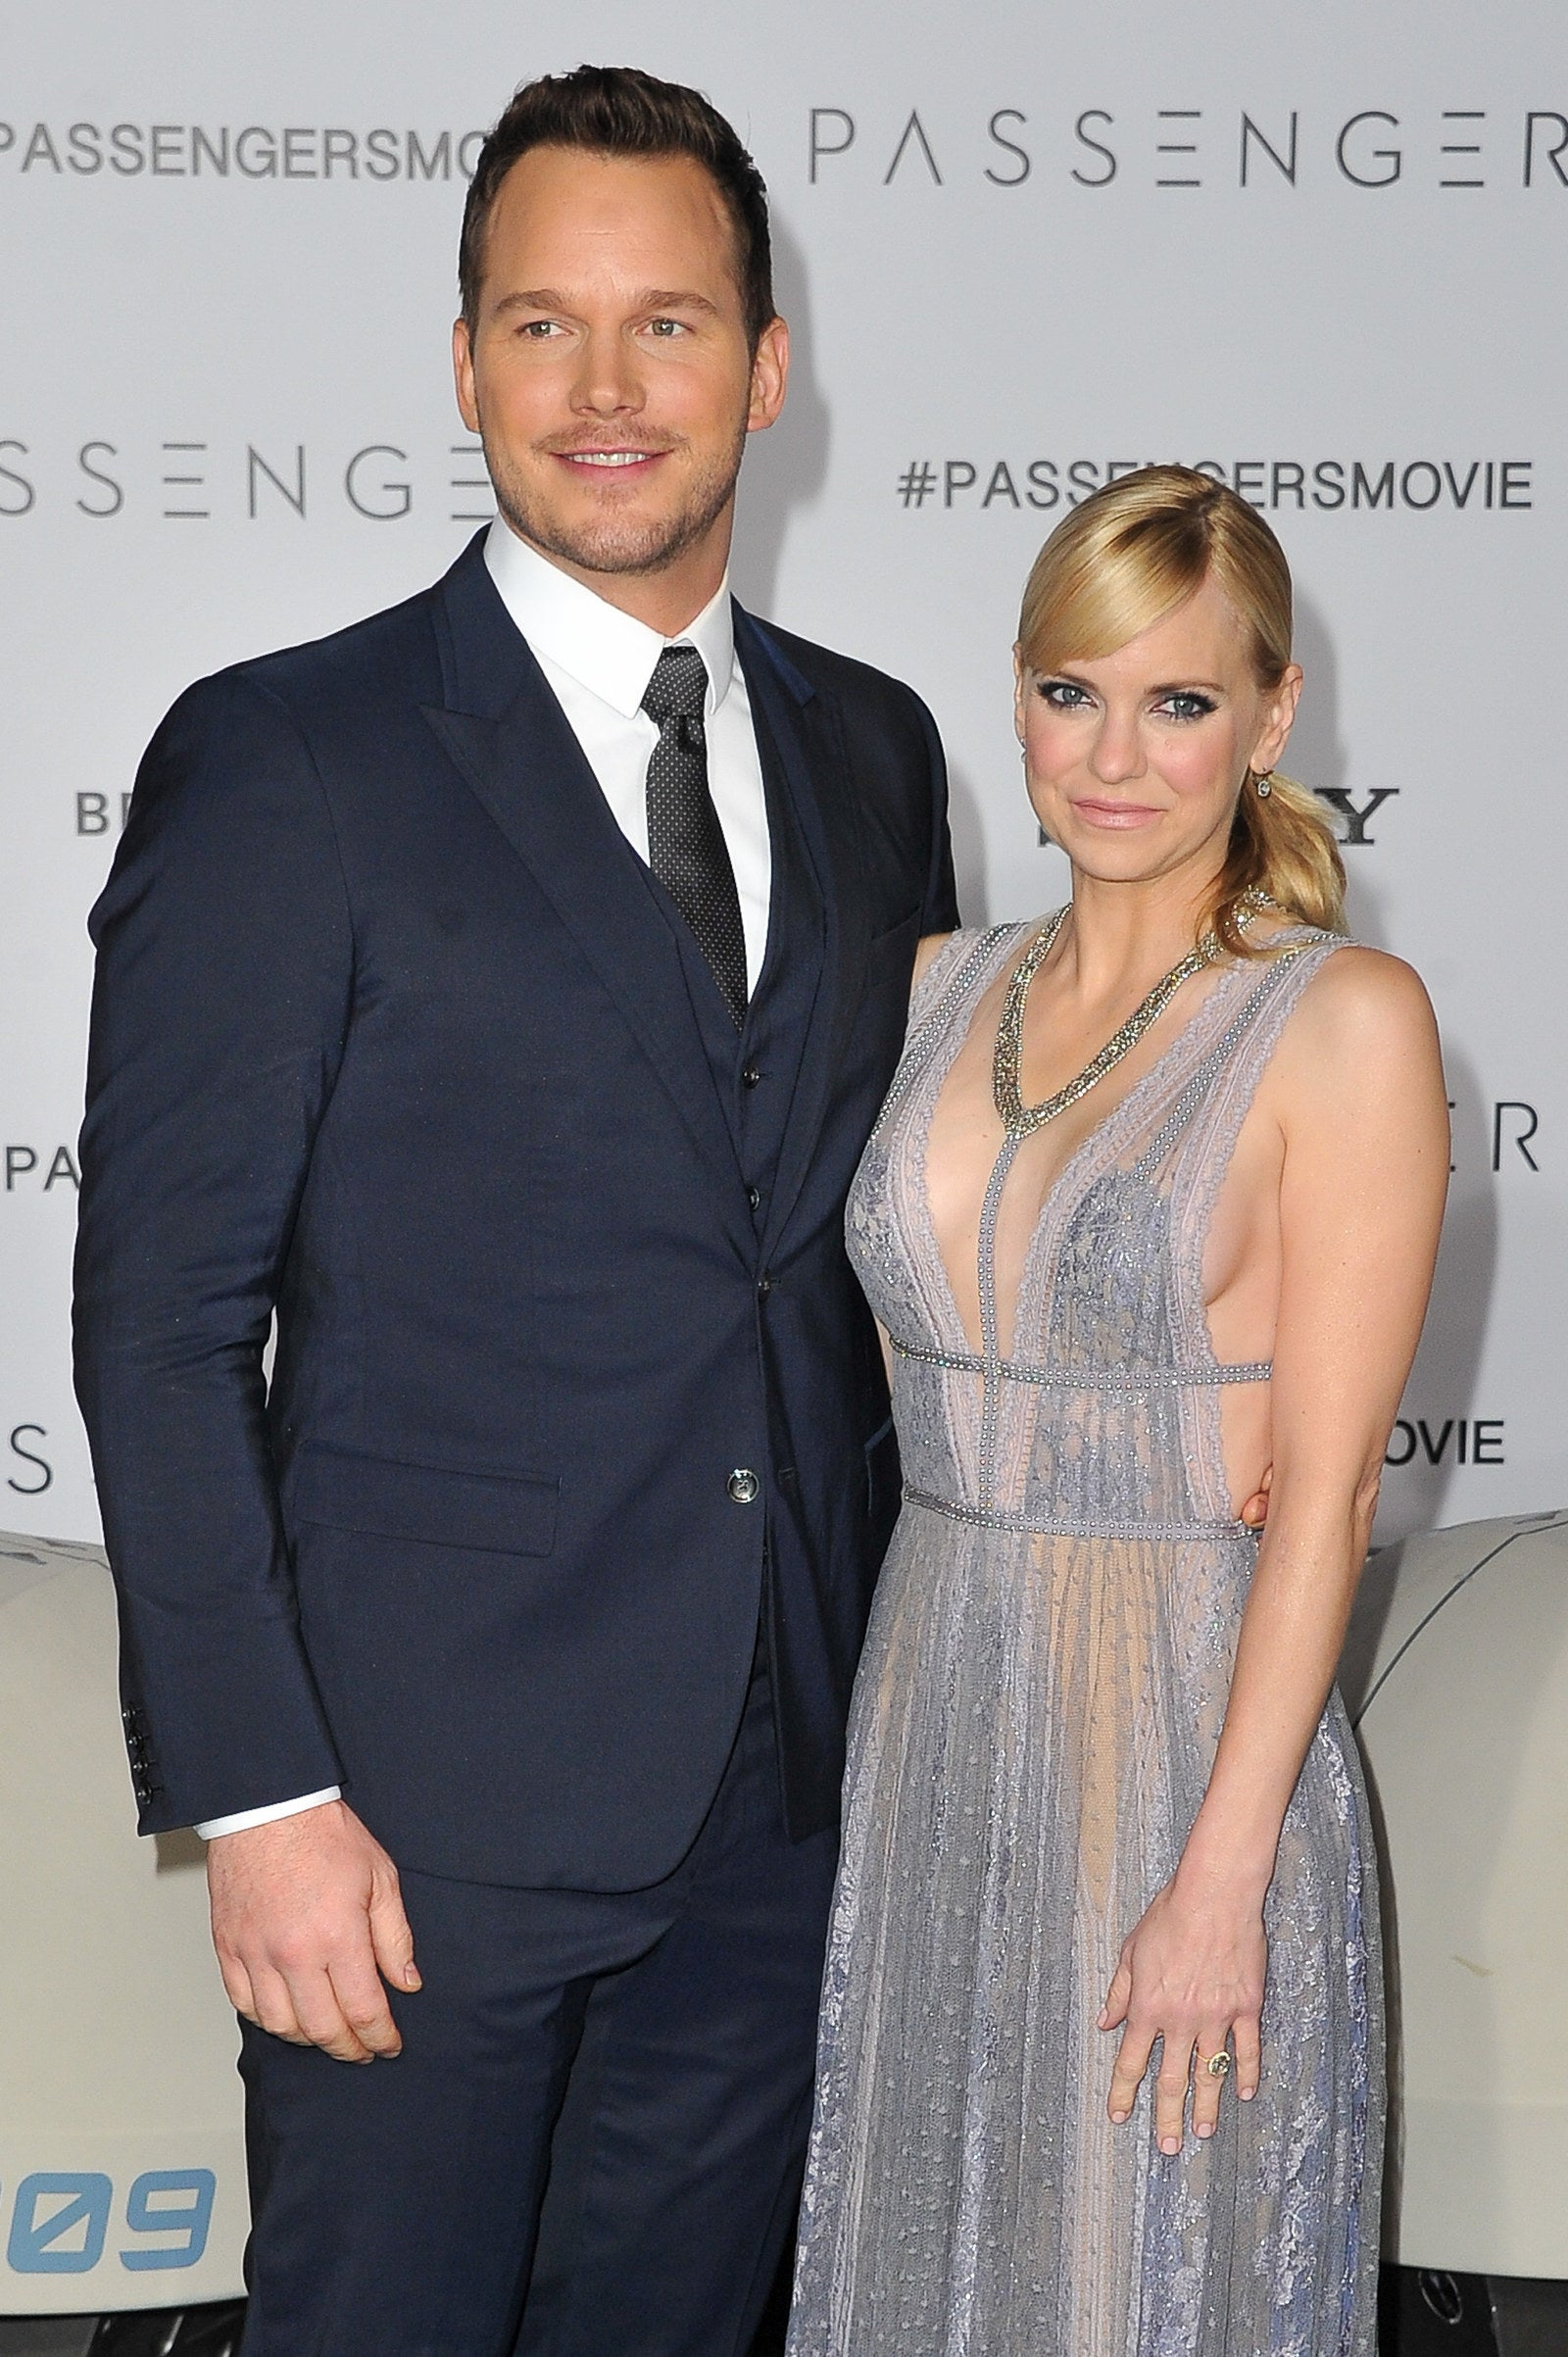 Chris Pratt just out-Chris Pratt'ed himself by giving his wife, the amazing Anna Faris, a stunning, huge, sparkly, perfectly upgraded engagement ring.